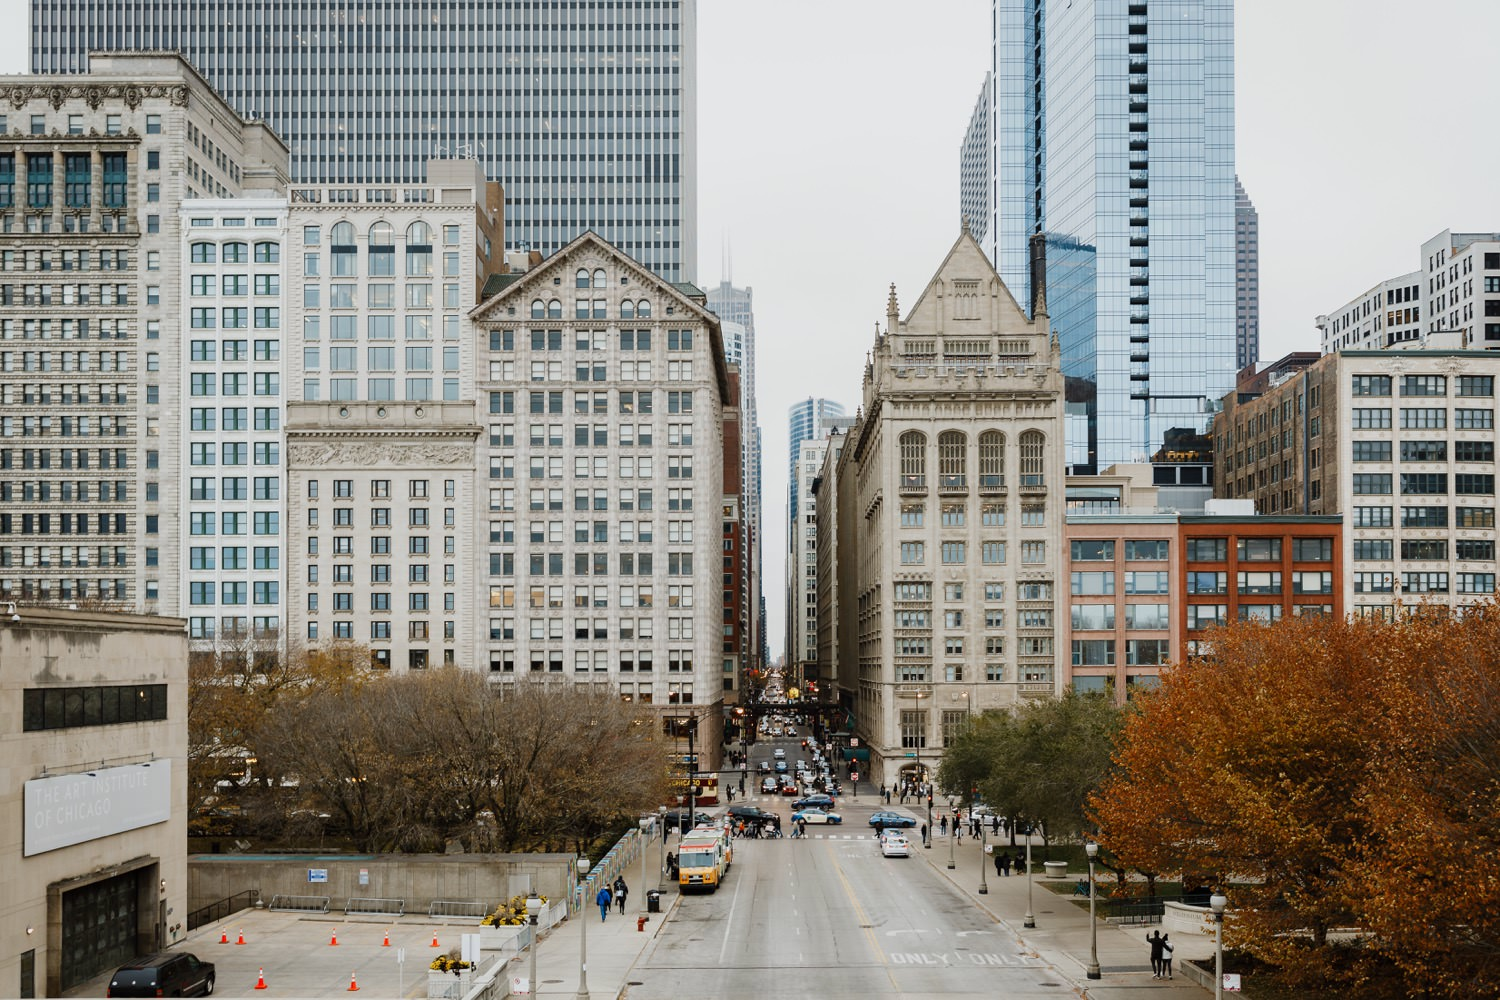 Picture of Michigan ave in chicago taken during the fall engagement session